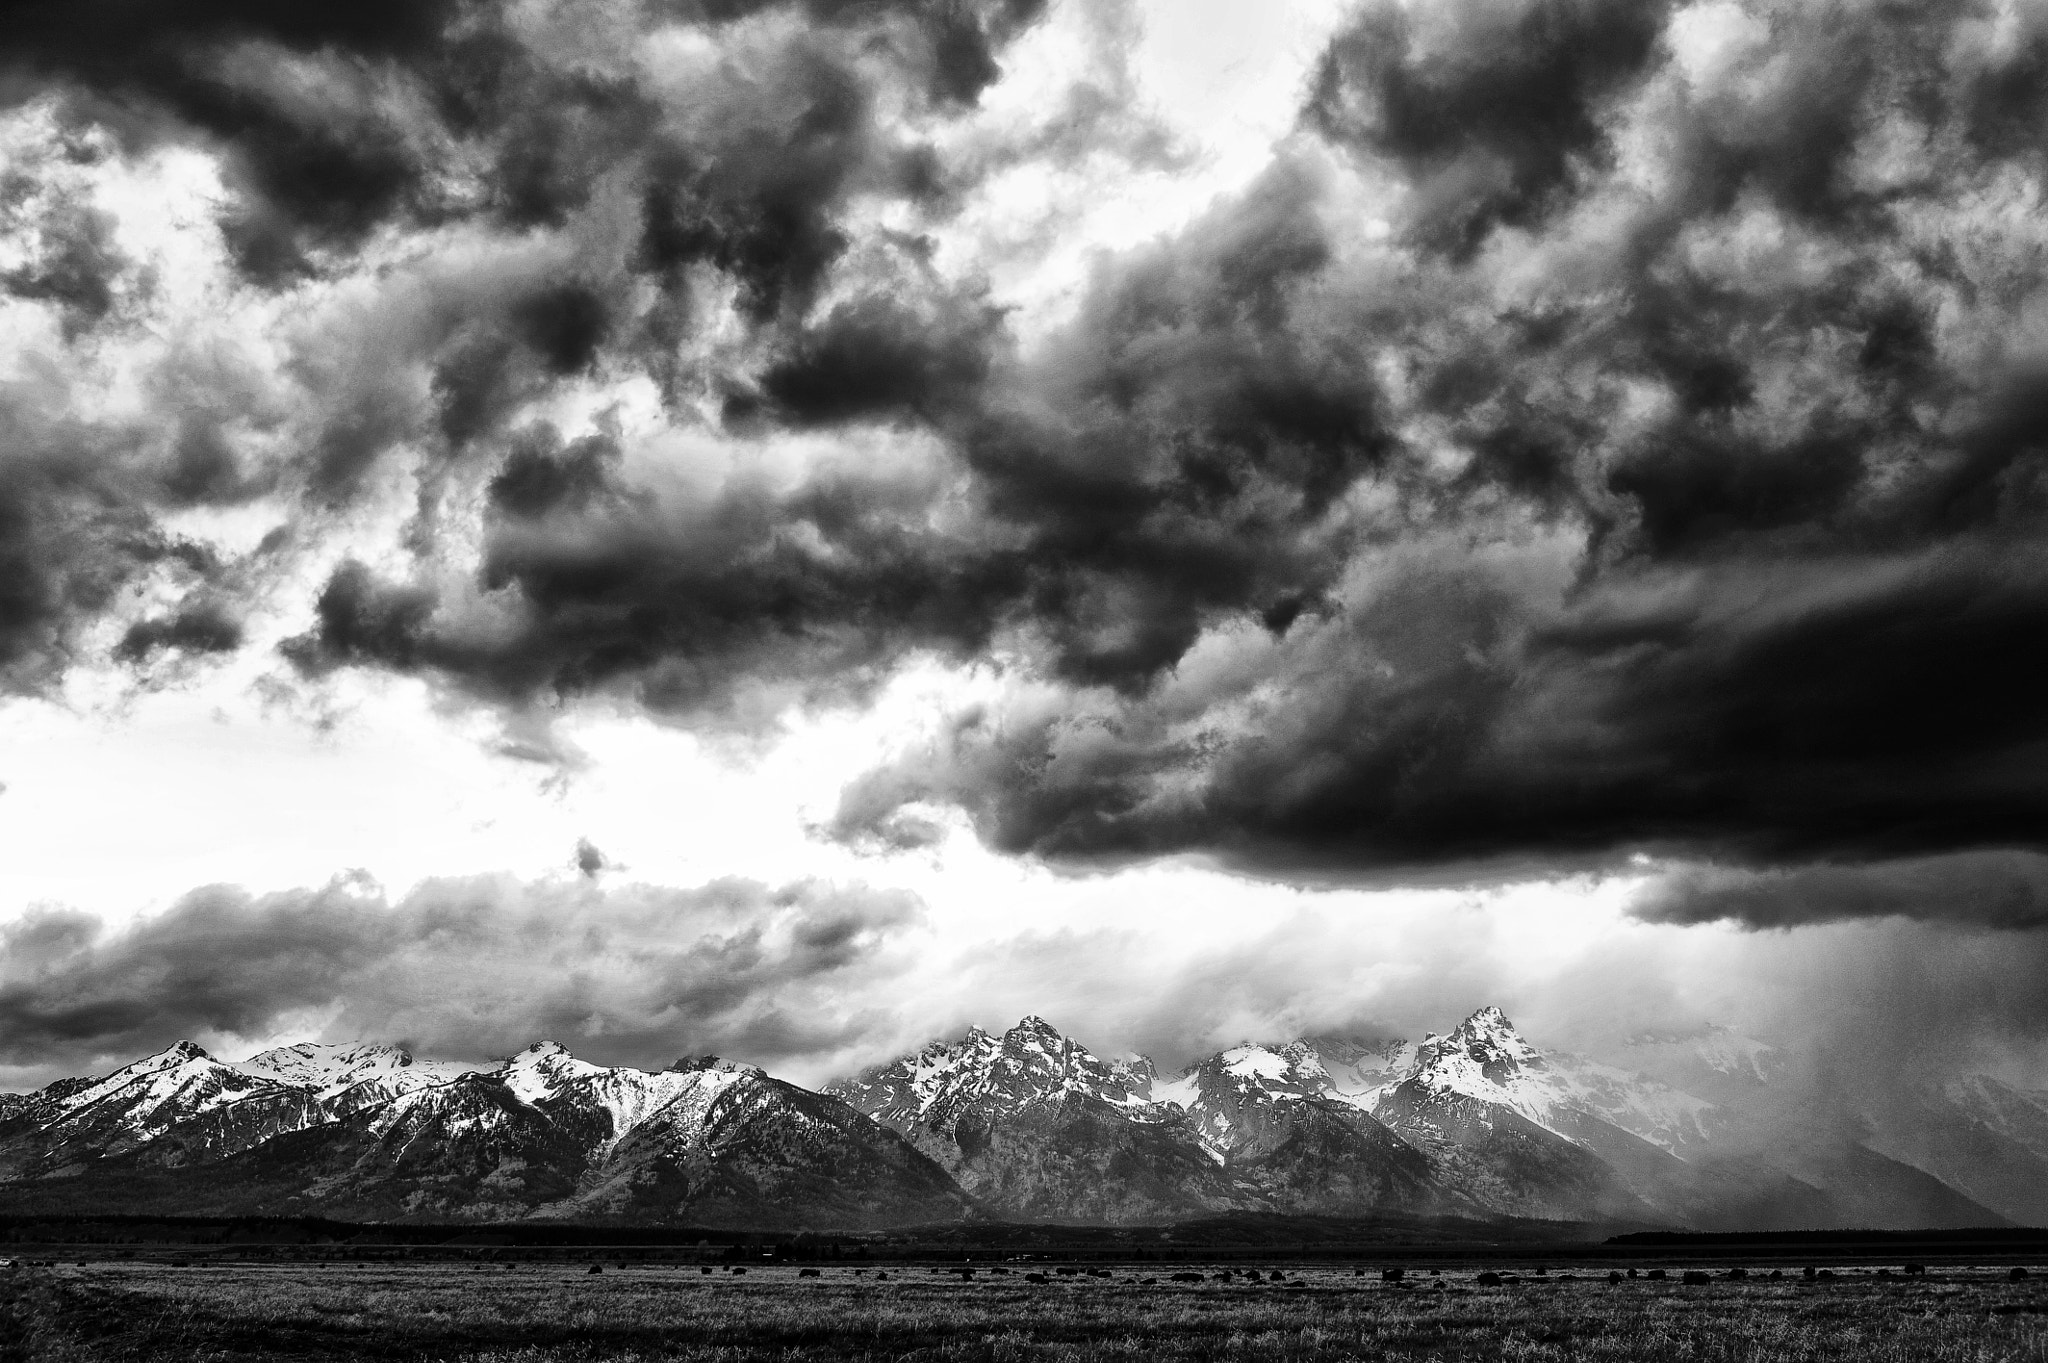 Photograph Storm Over the Tetons by Jeff Clow on 500px